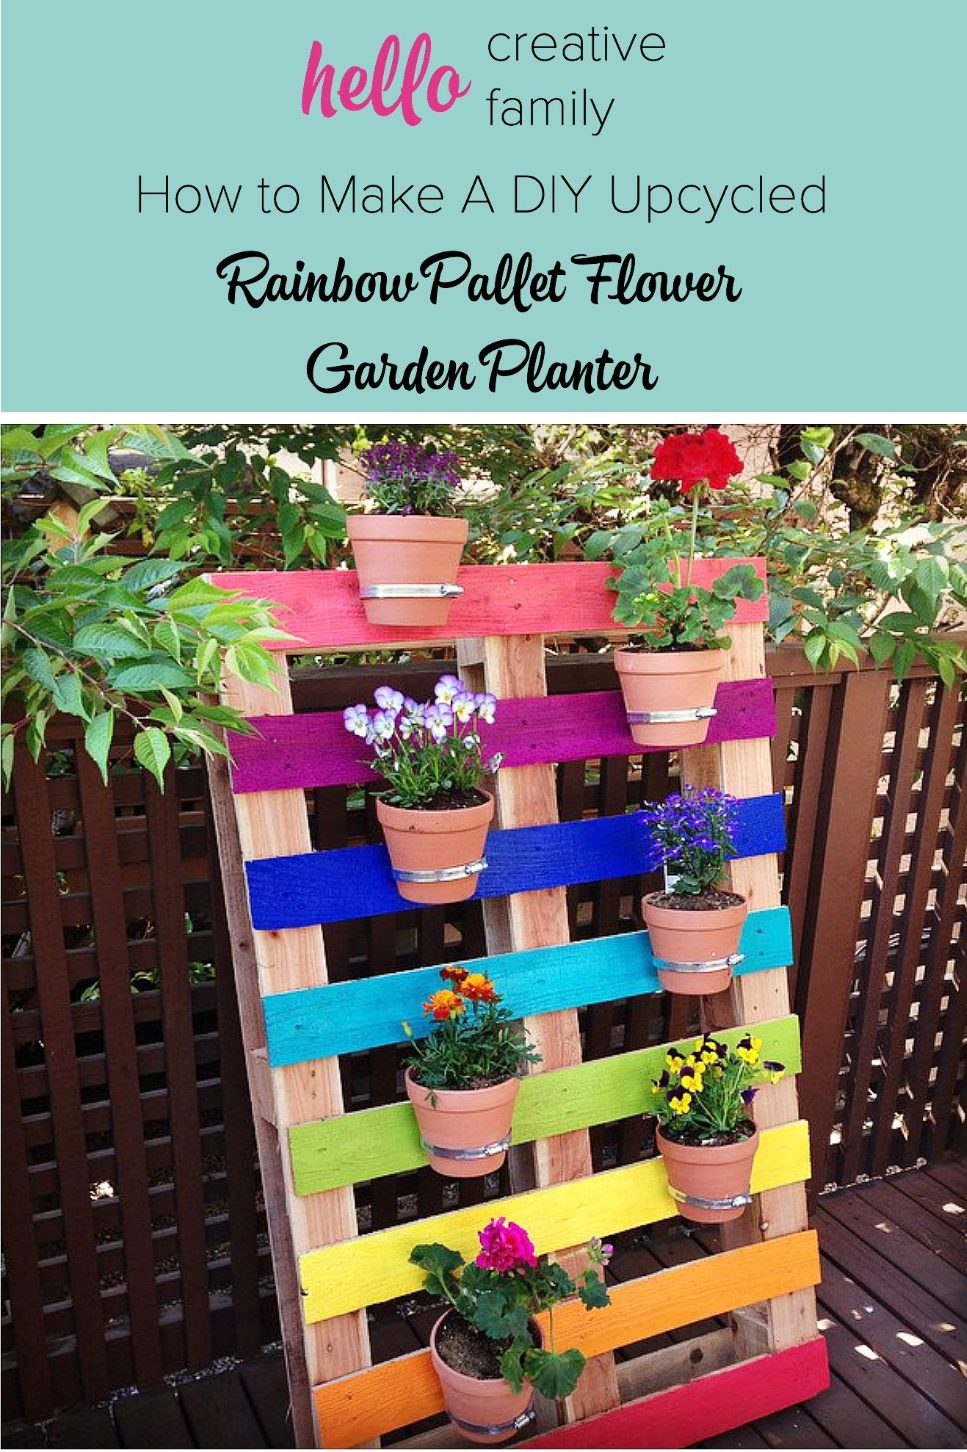 Create a bright & colorful upcycled rainbow pallet planter project with these simple instructions from Hello Creative Family. A great family weekend project that kids will love.